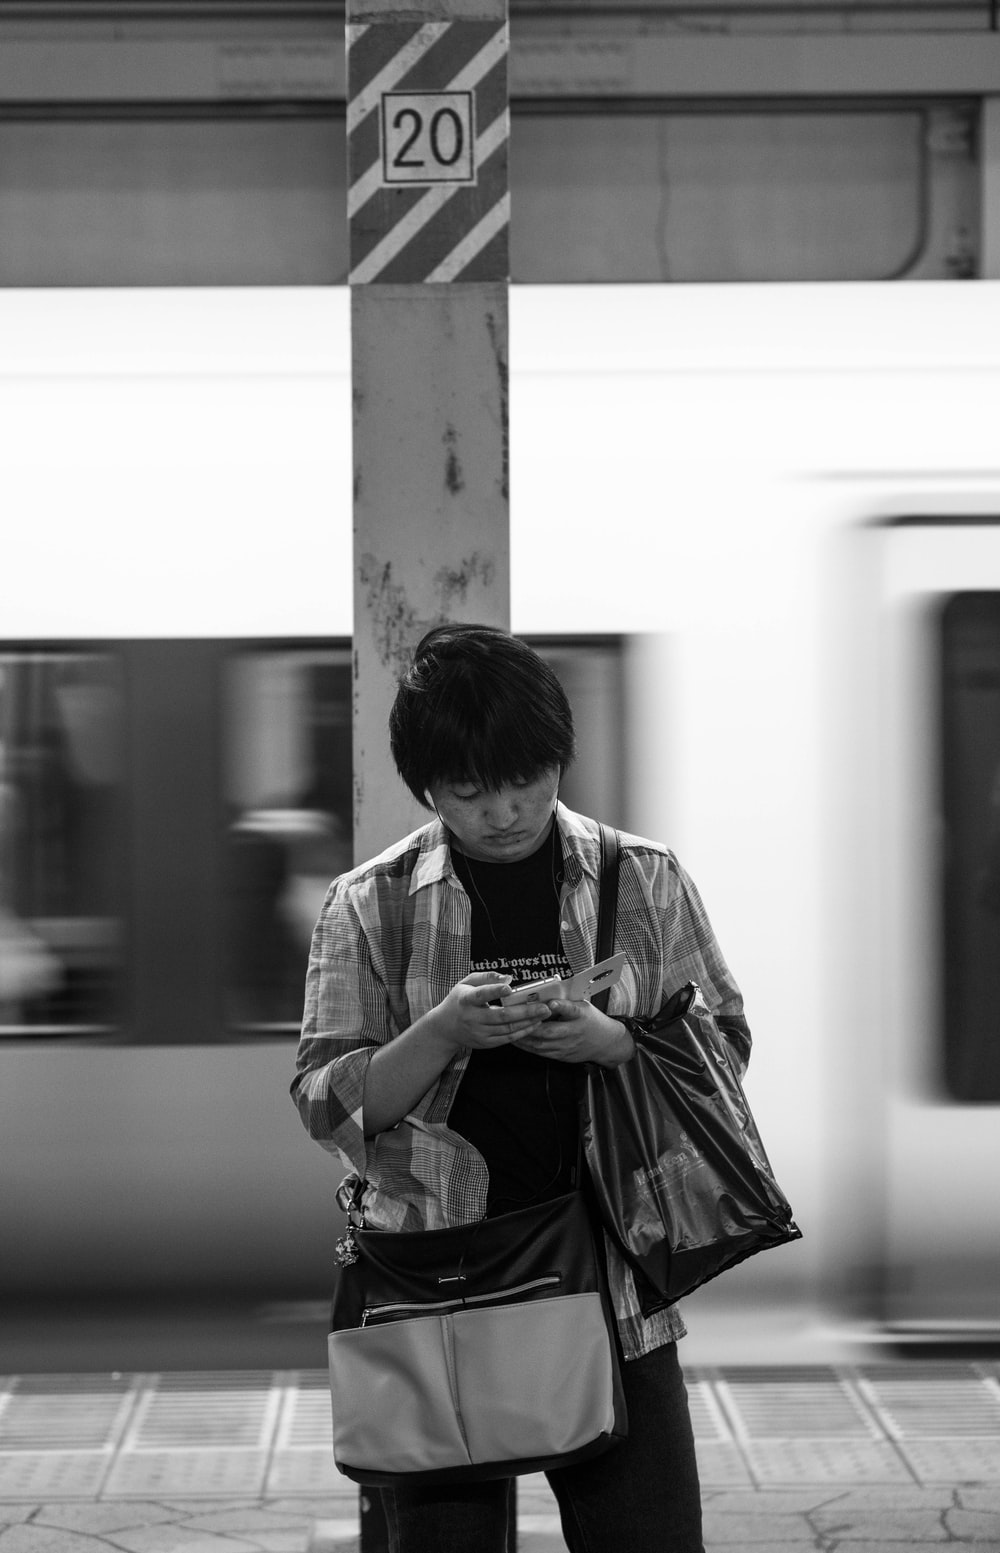 grayscale photography of man using phone while standing